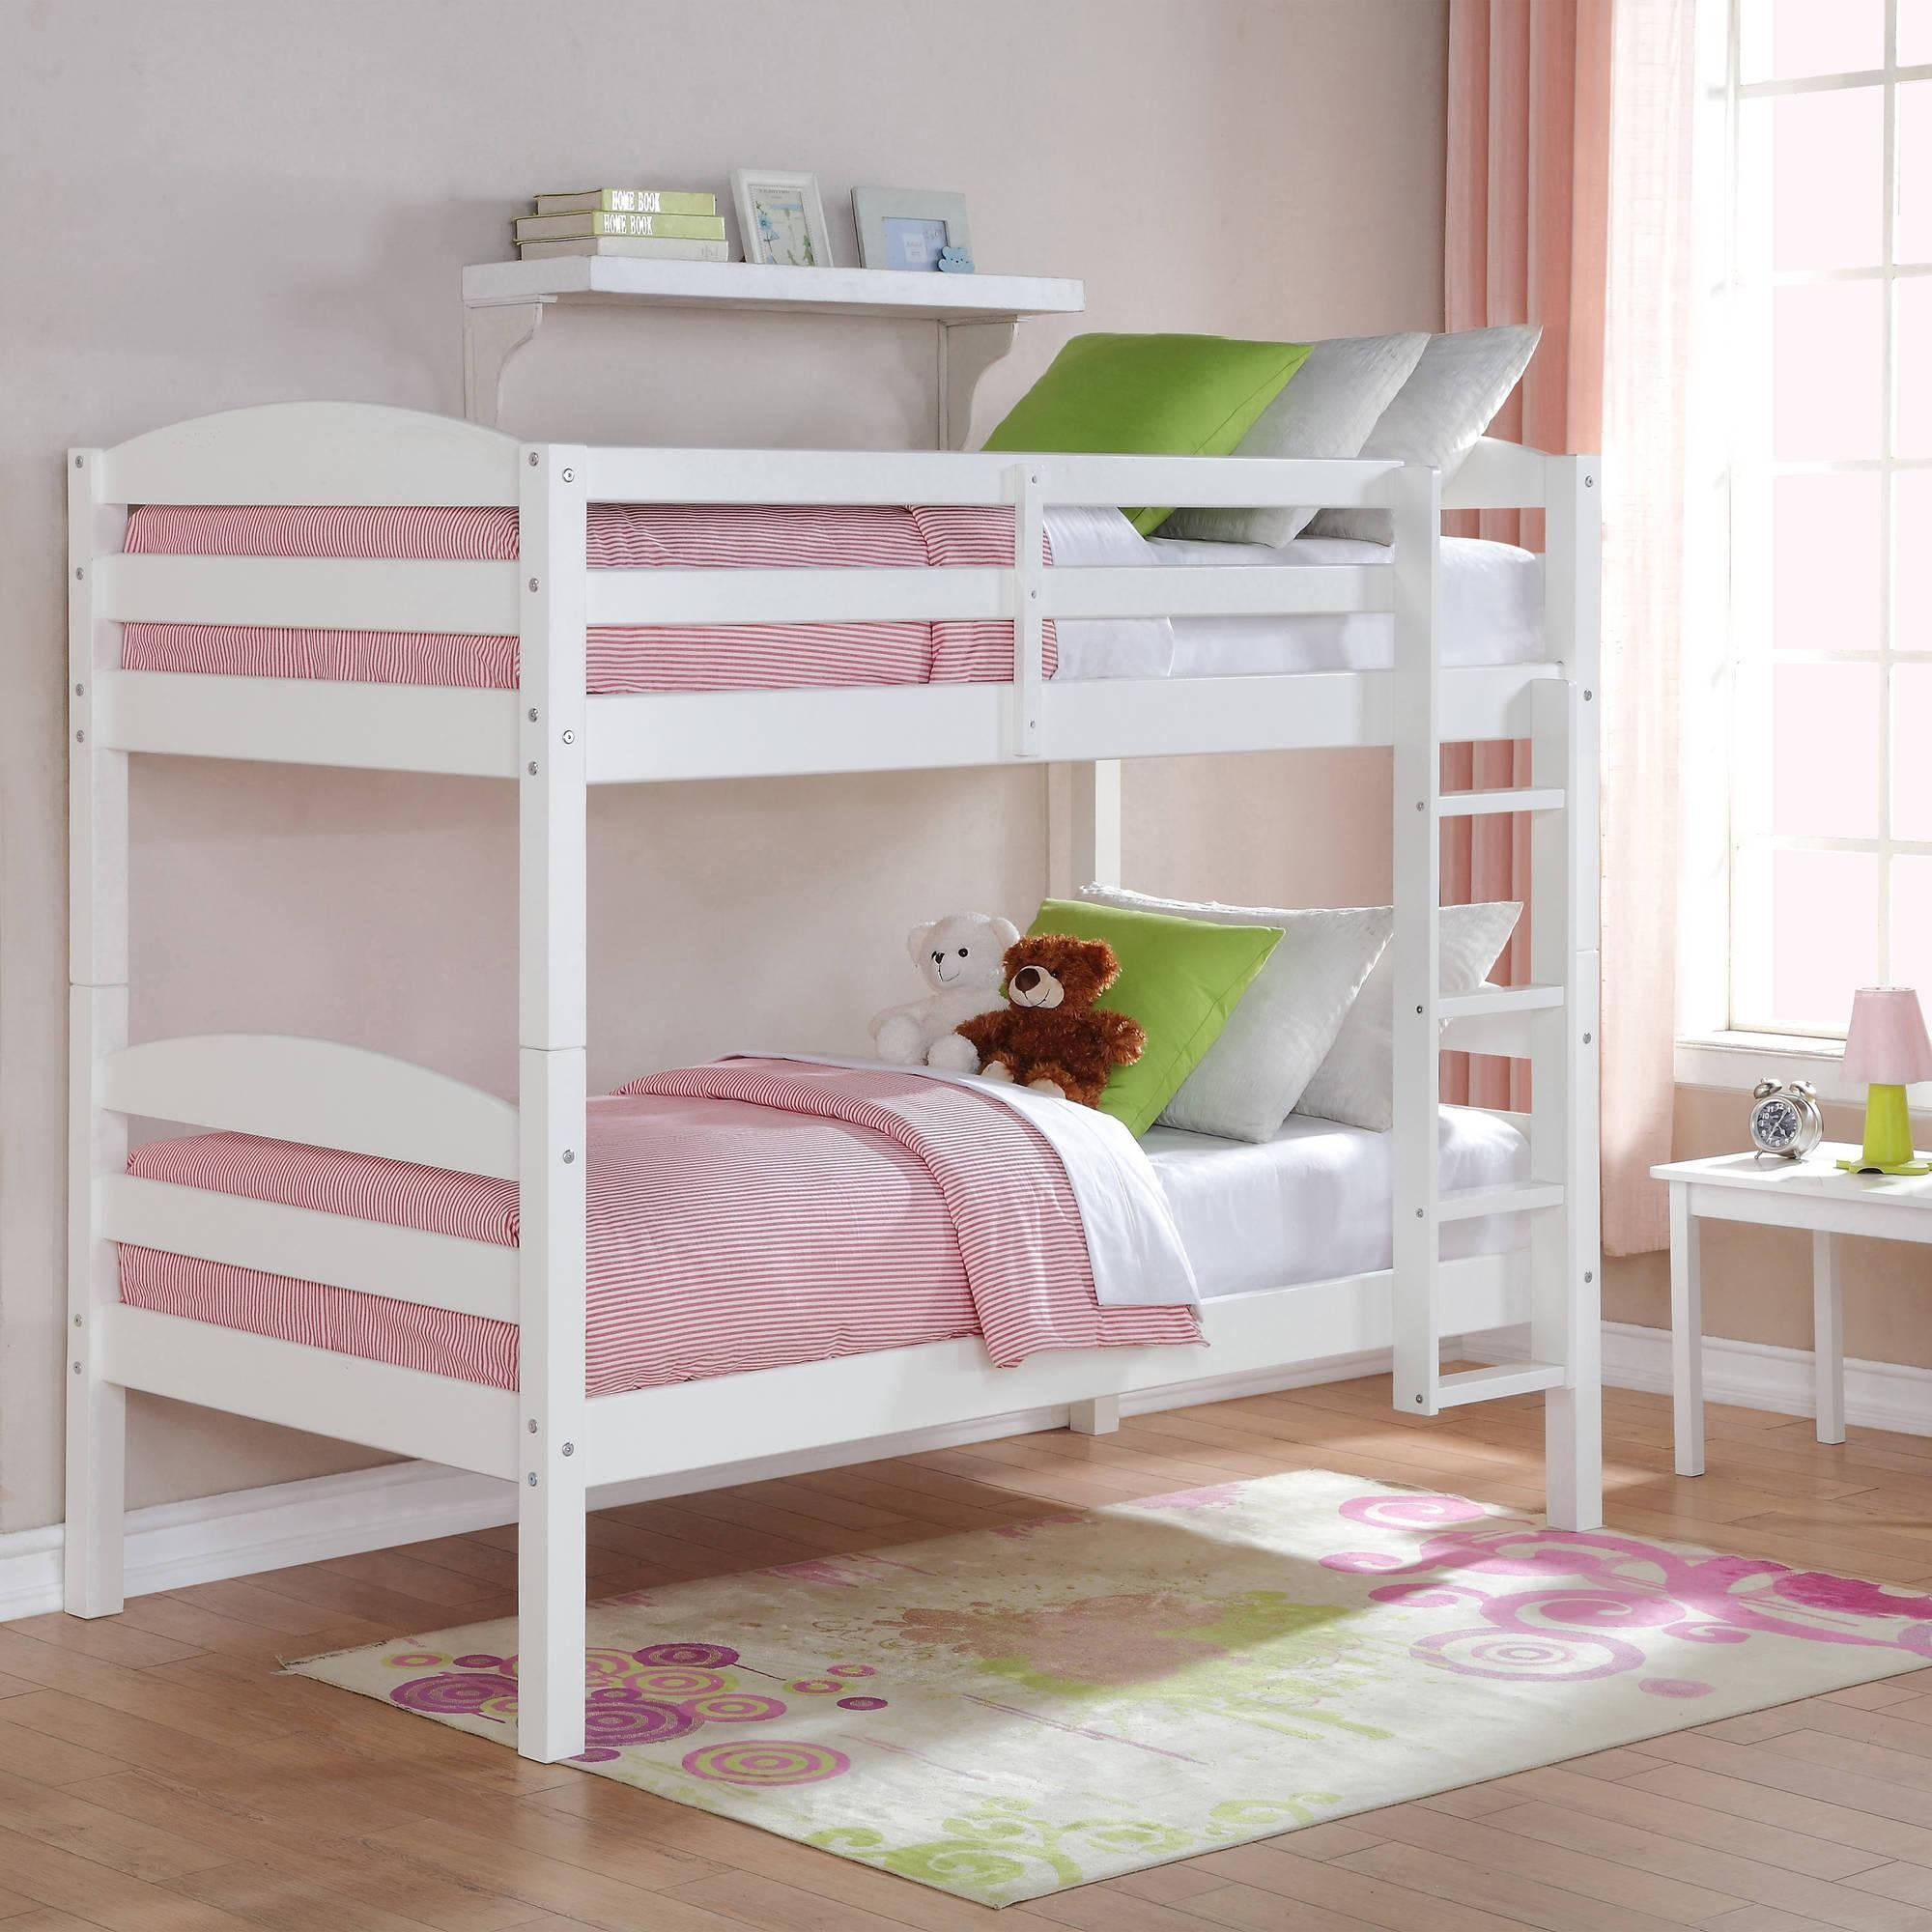 Buy Easy To Convert To Twin Bed Practical Space Saver Wood Bunk Bed